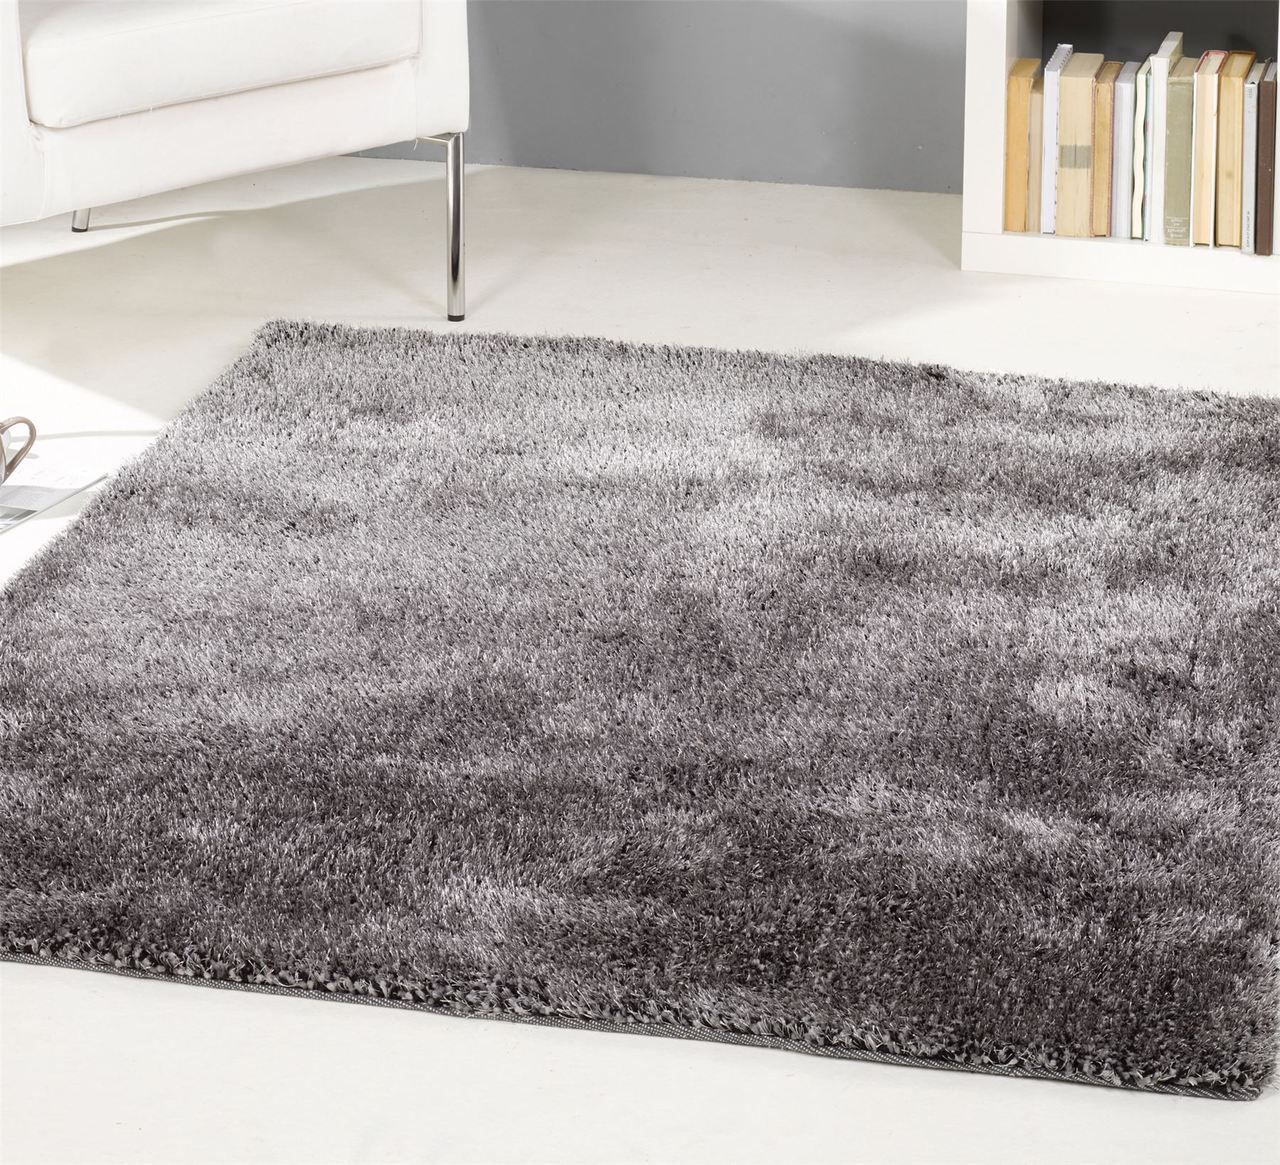 Grande Vista Grey Mix Rug. Shaggy Rugs